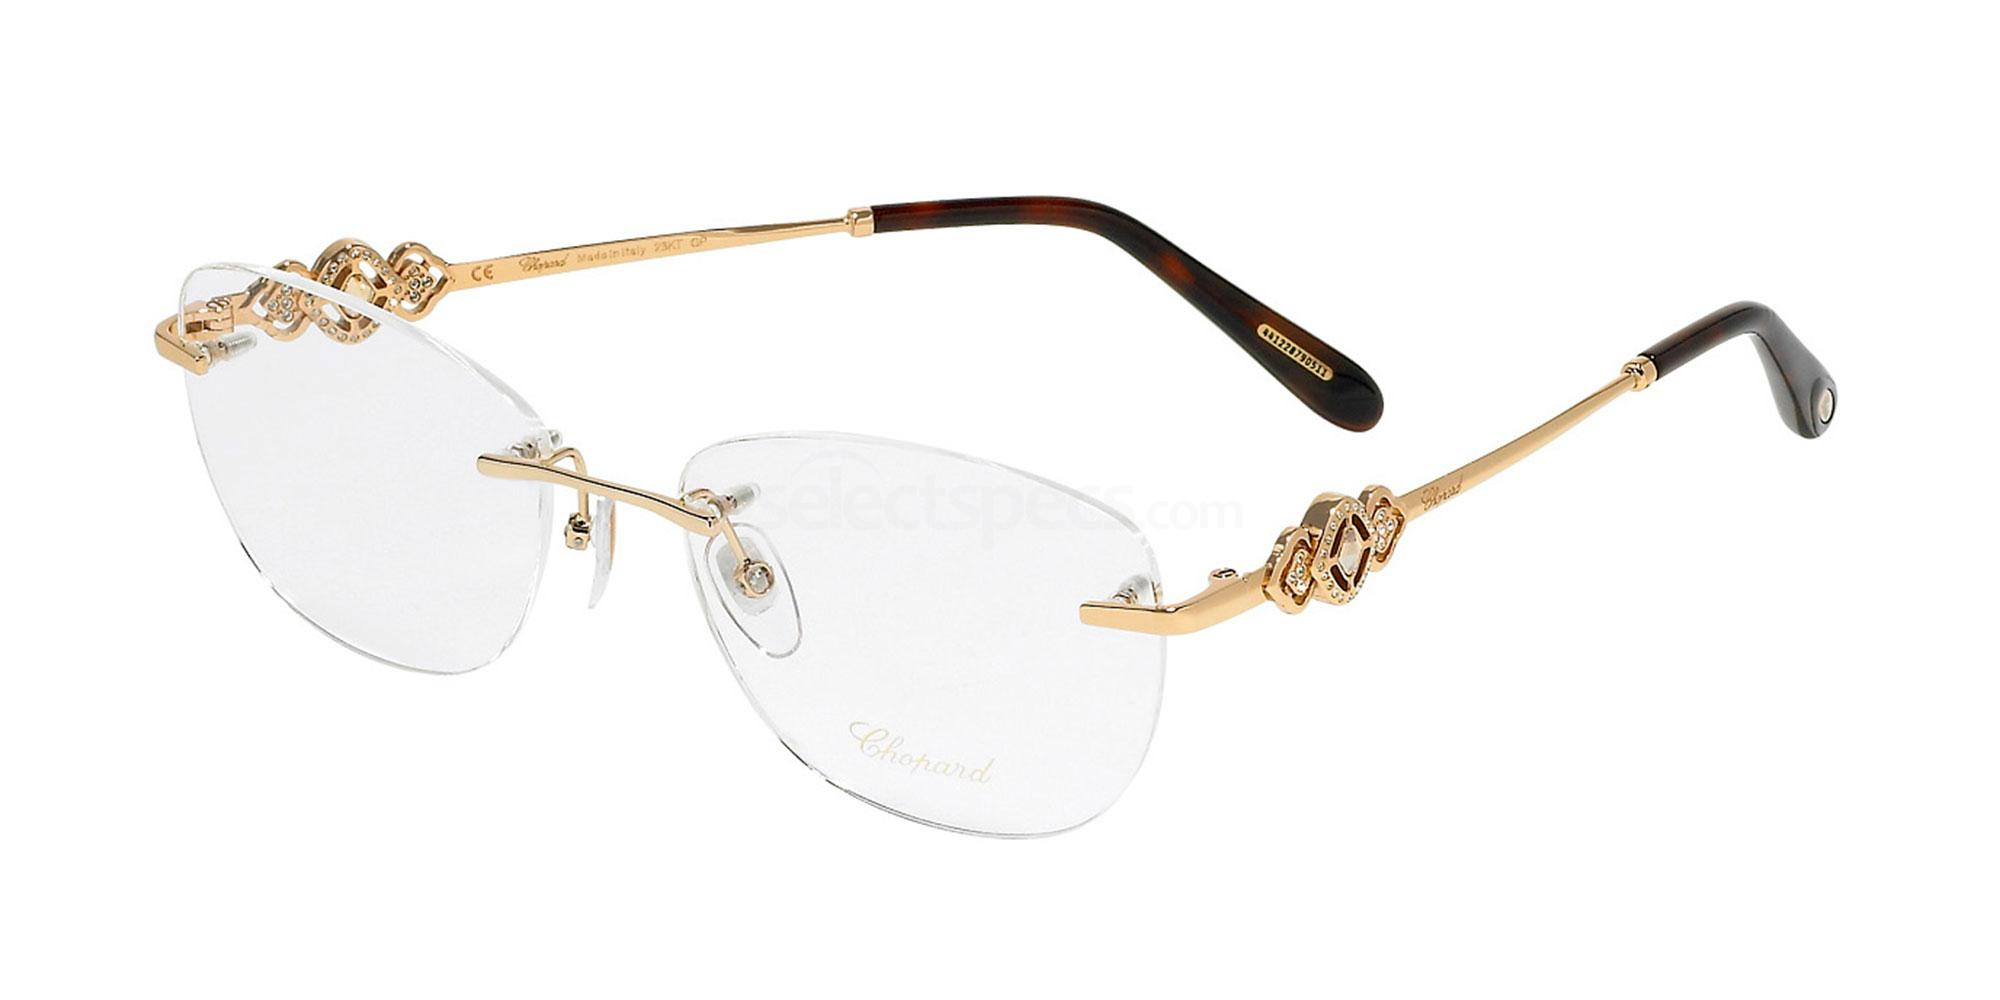 0300 VCHD11S Glasses, Chopard